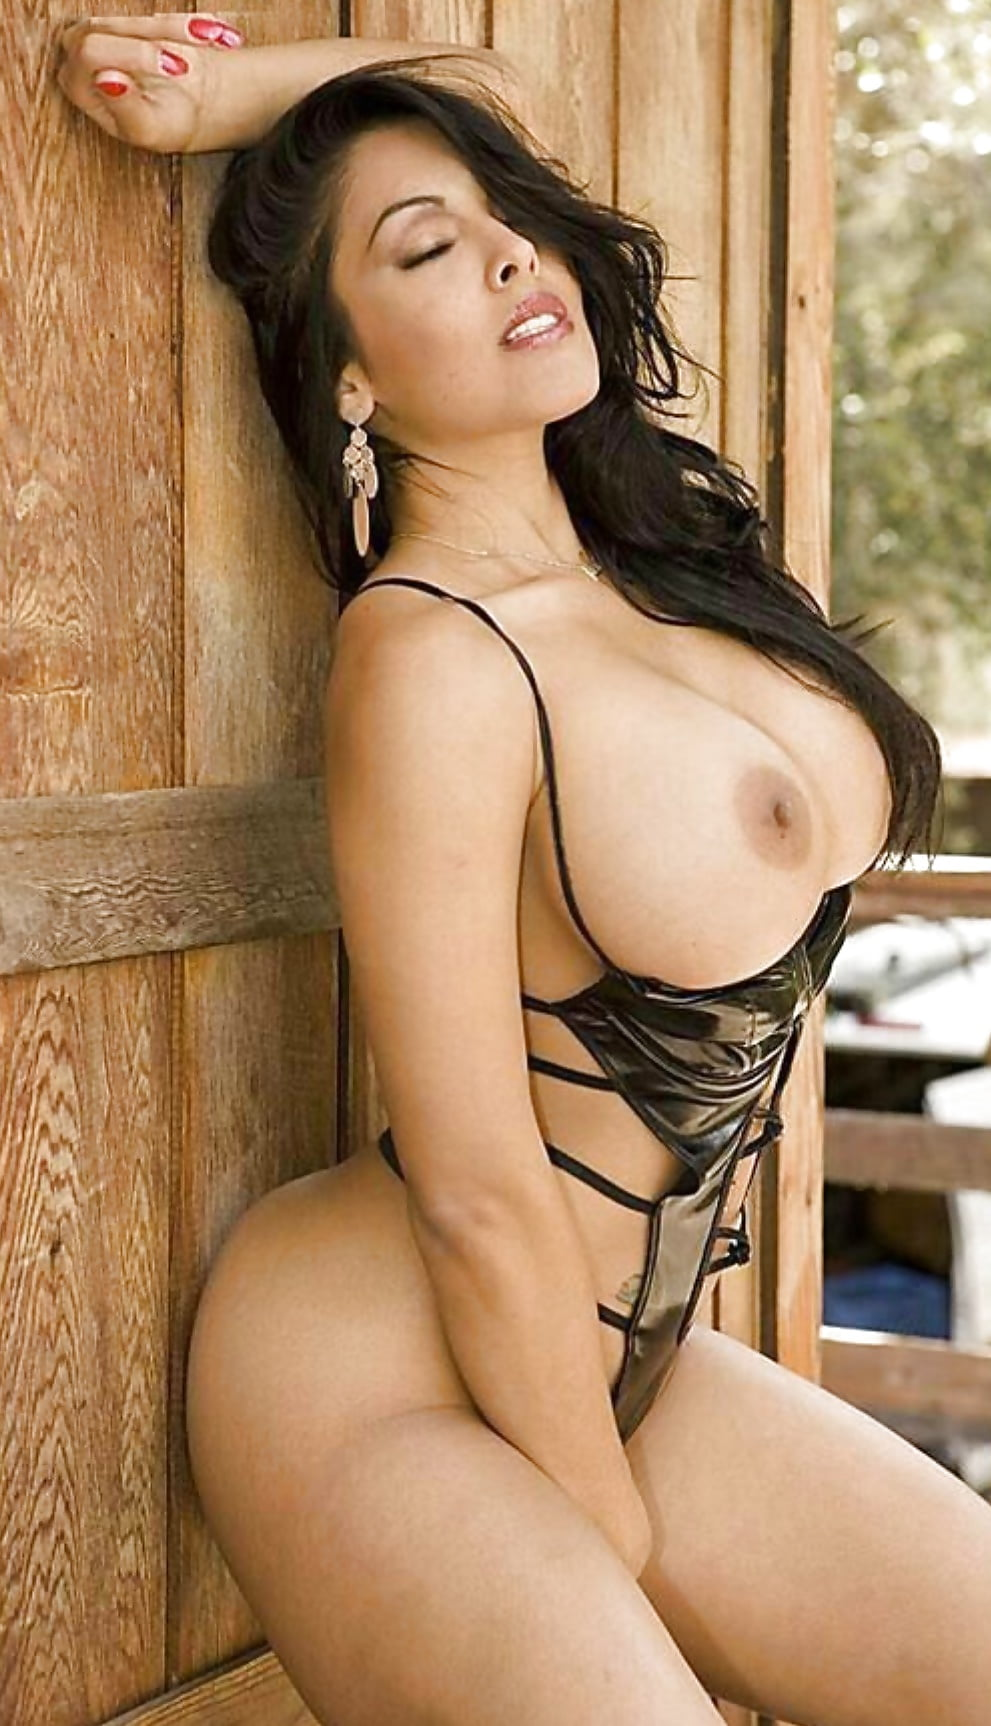 Latin girls with big tits #7